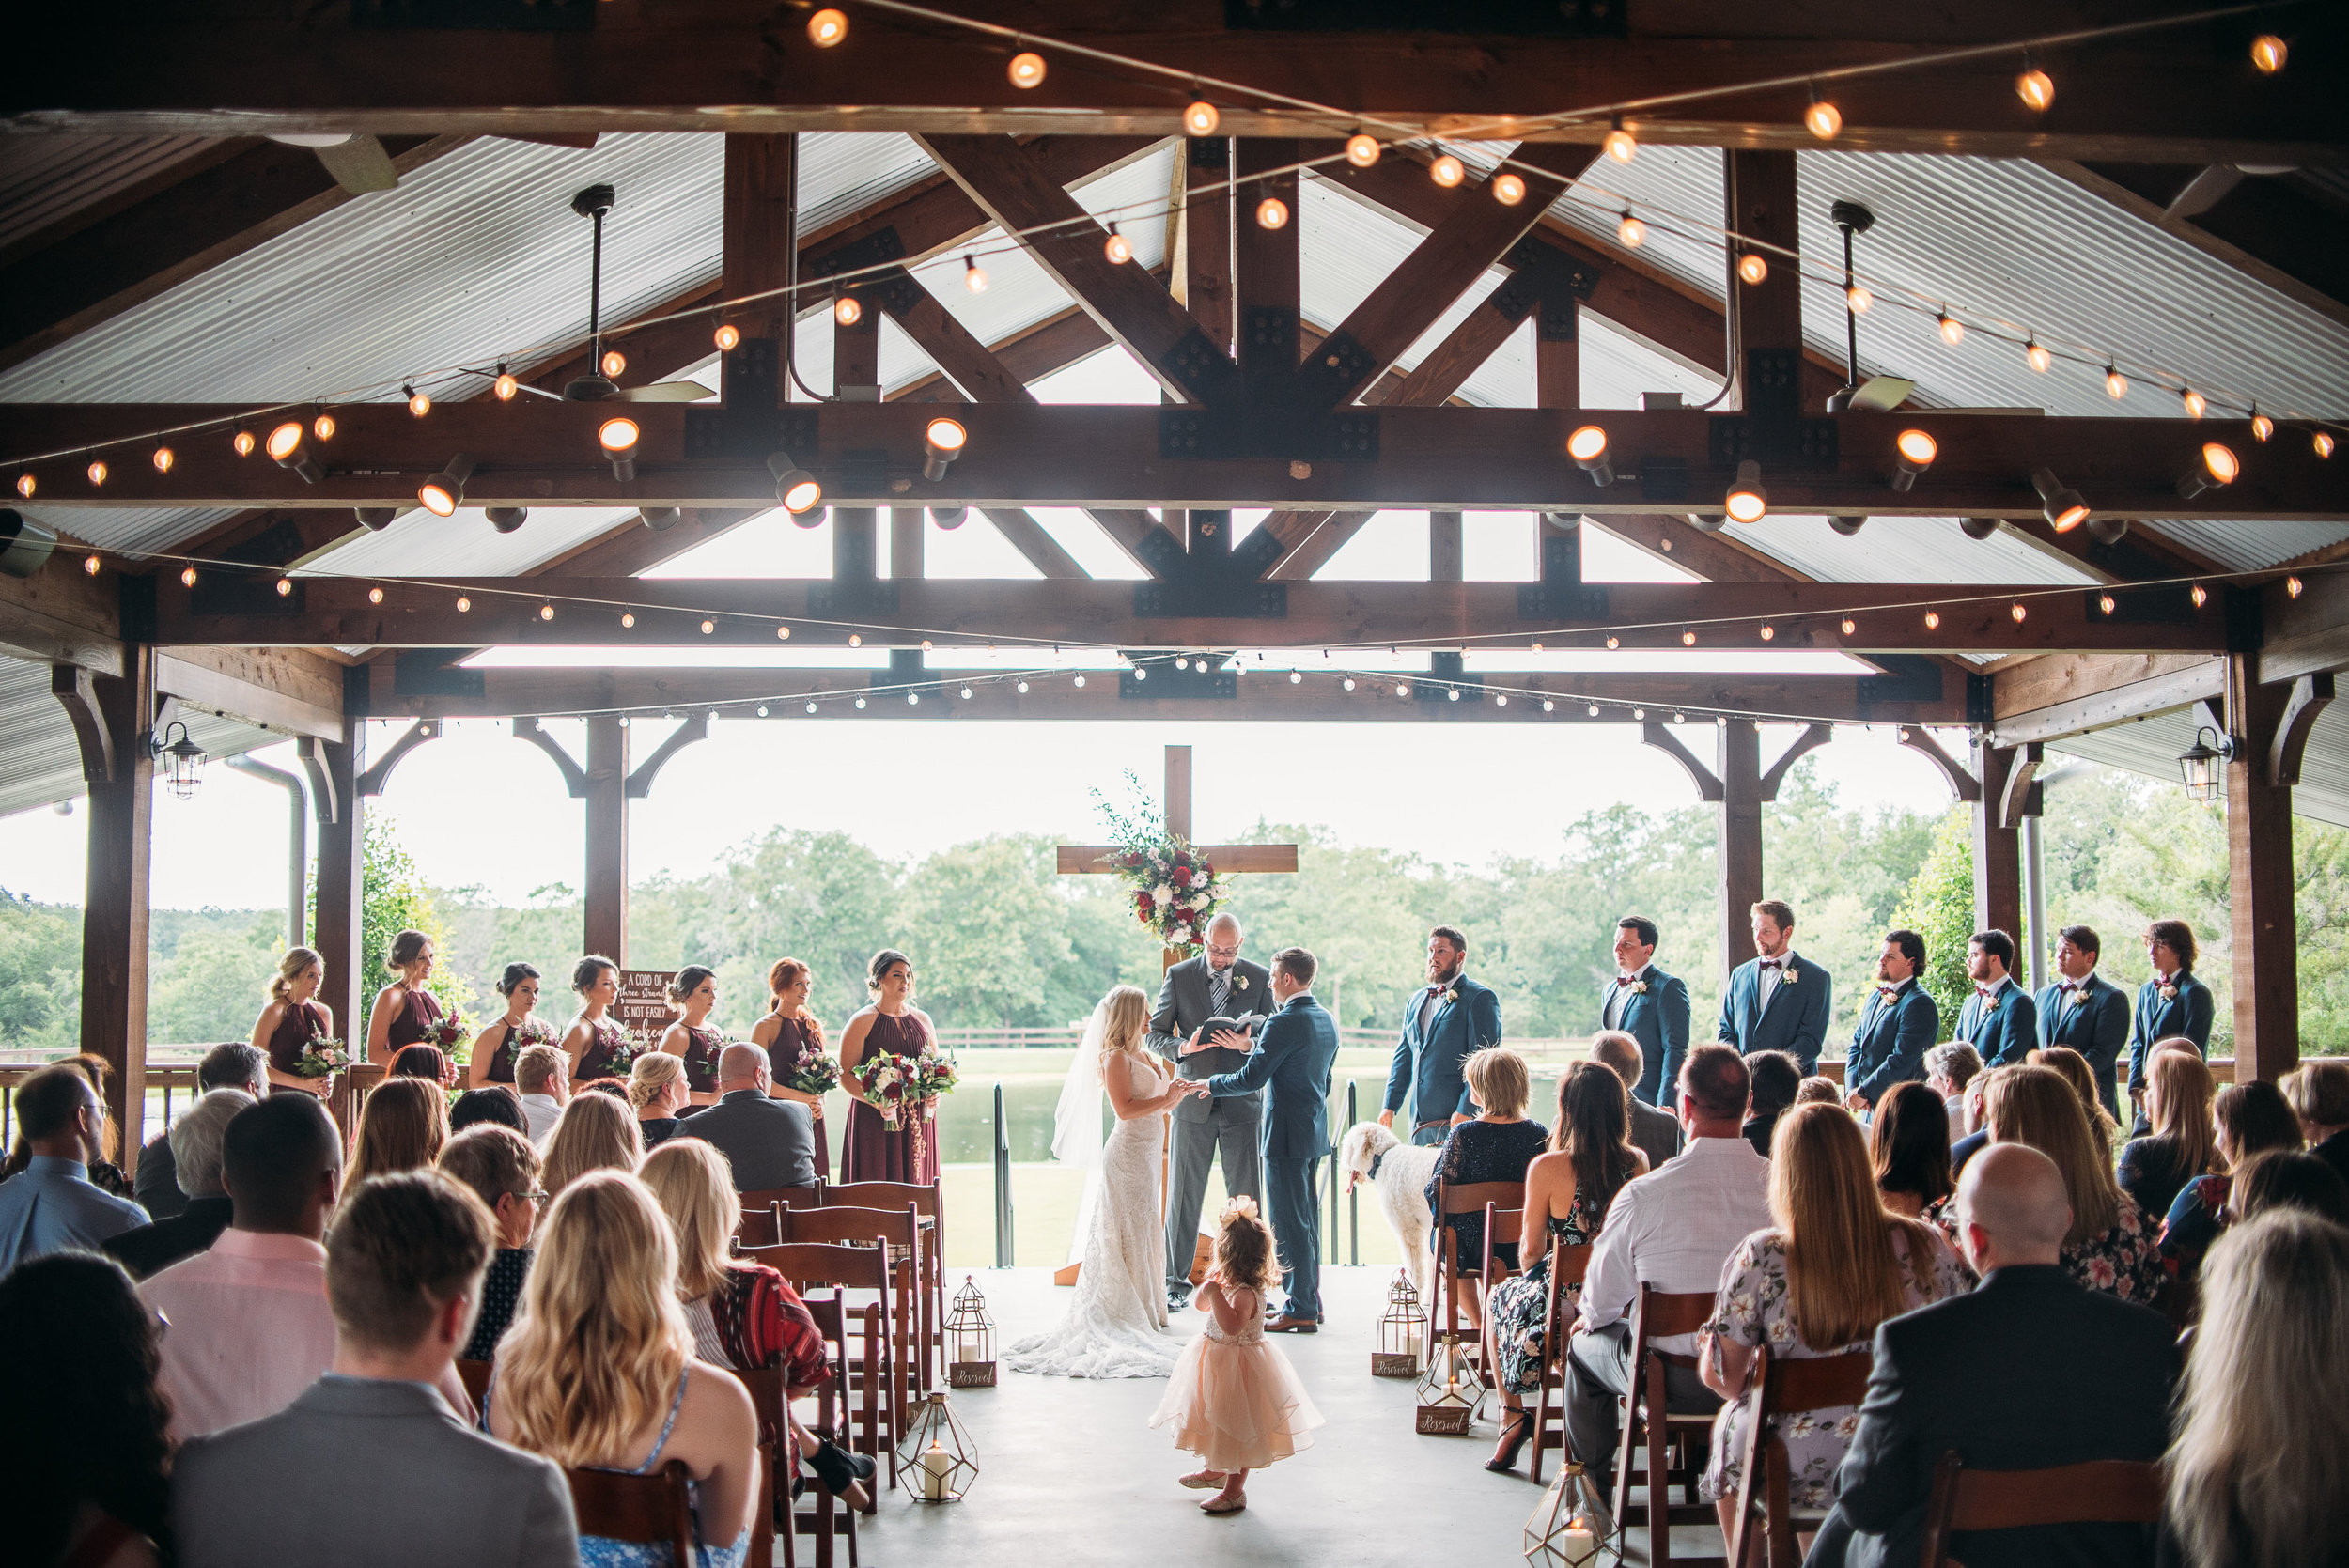 EmilyCody-Peach-Creek-Ranch-Wedding-Ceremony-Bridals-Engagement-College-Station-Photographer-Videographer-San-Angel-Photo-0175.jpg